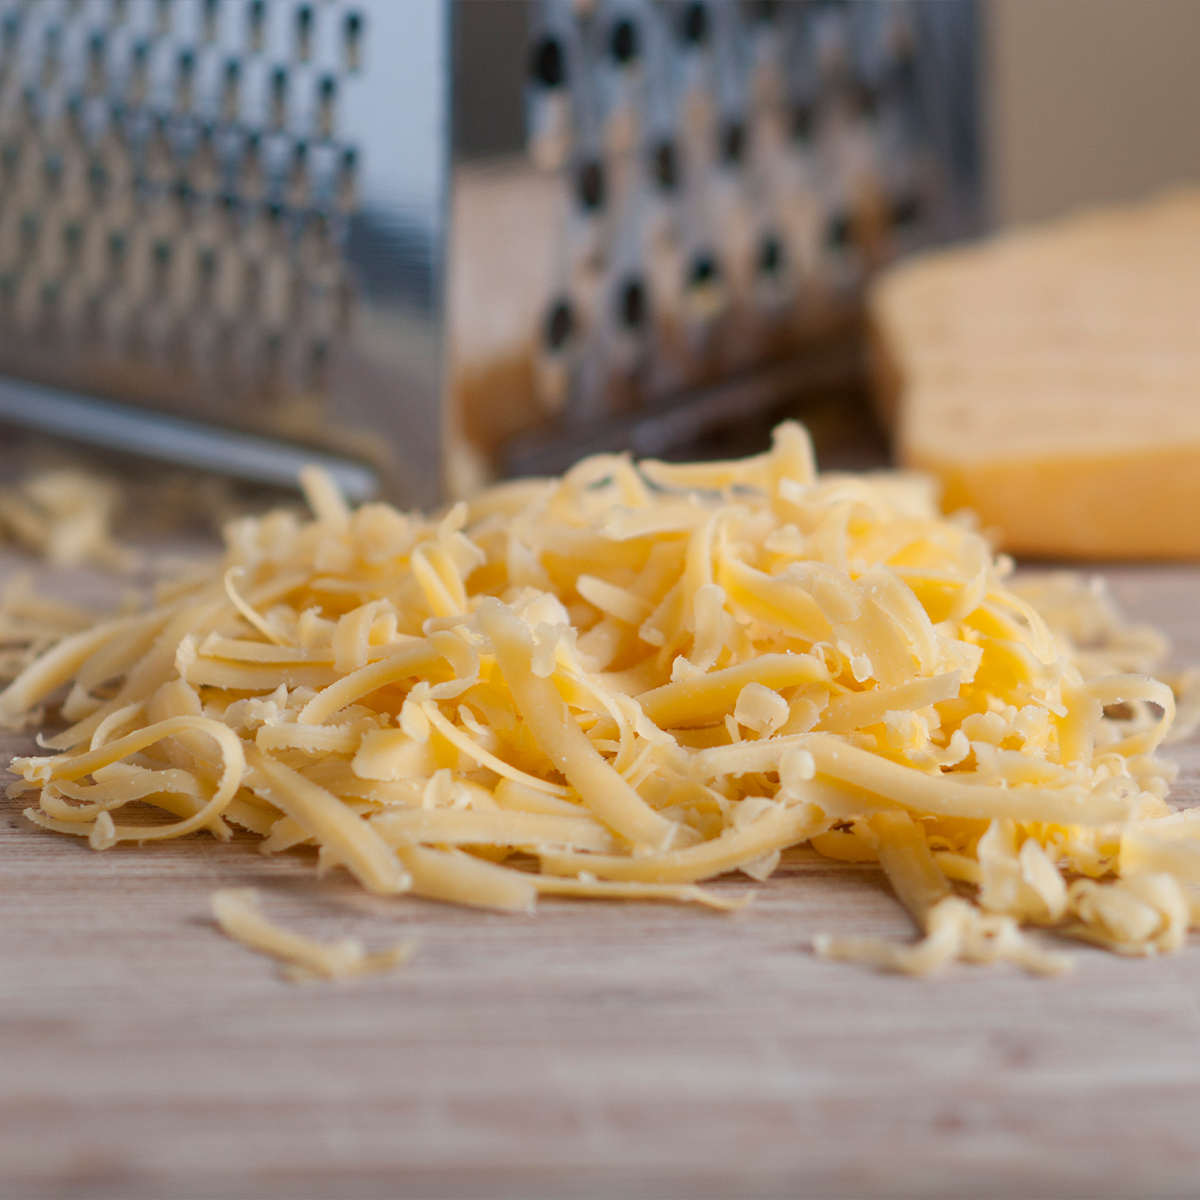 pile of shredded cheese